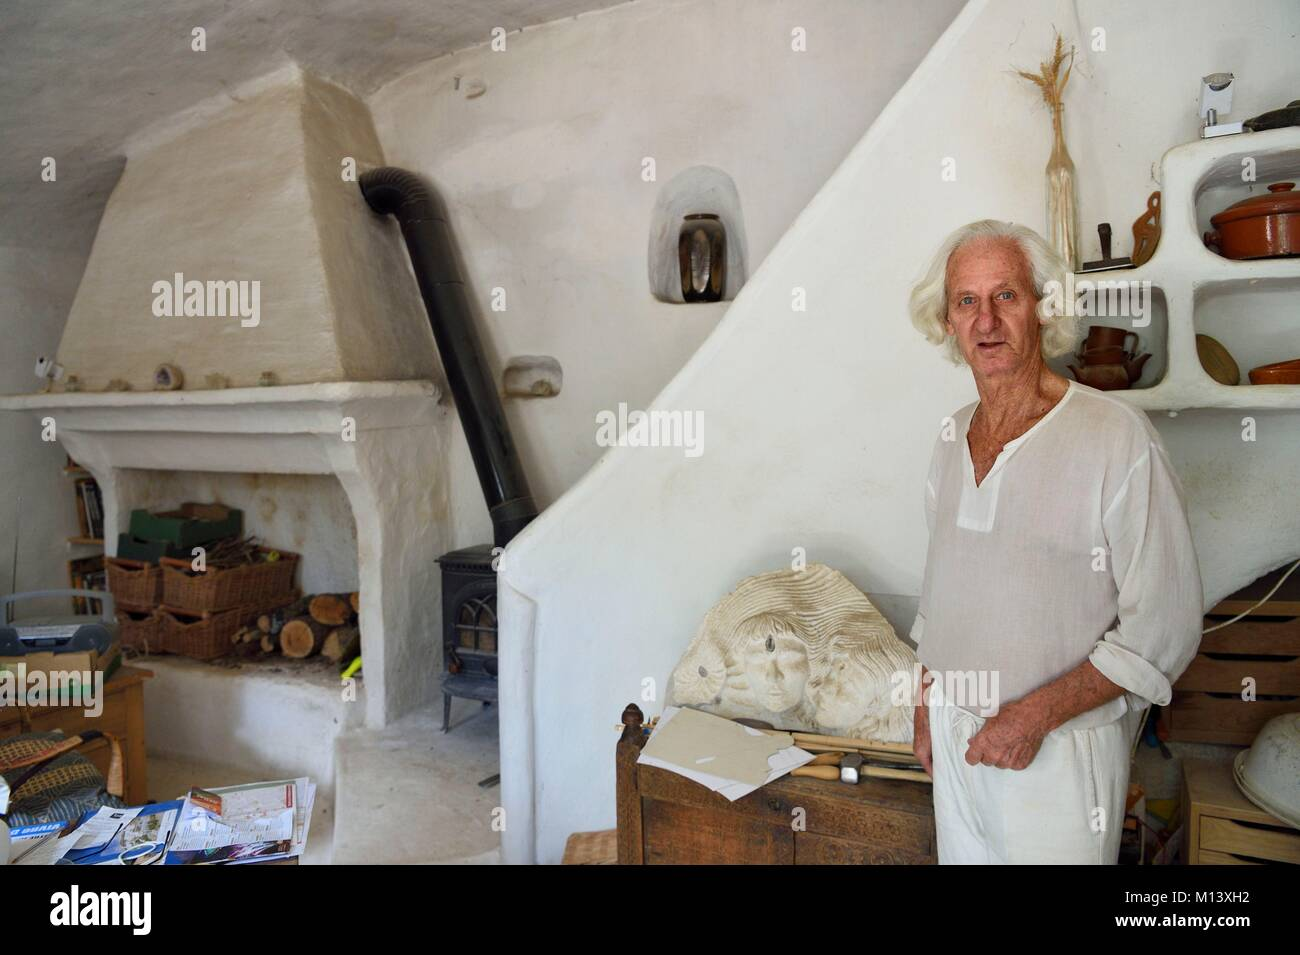 France, Bouches du Rhone, Aix en Provence, quarries of Bibemus, the sculptor and stonecutter David Campbell at home - Stock Image